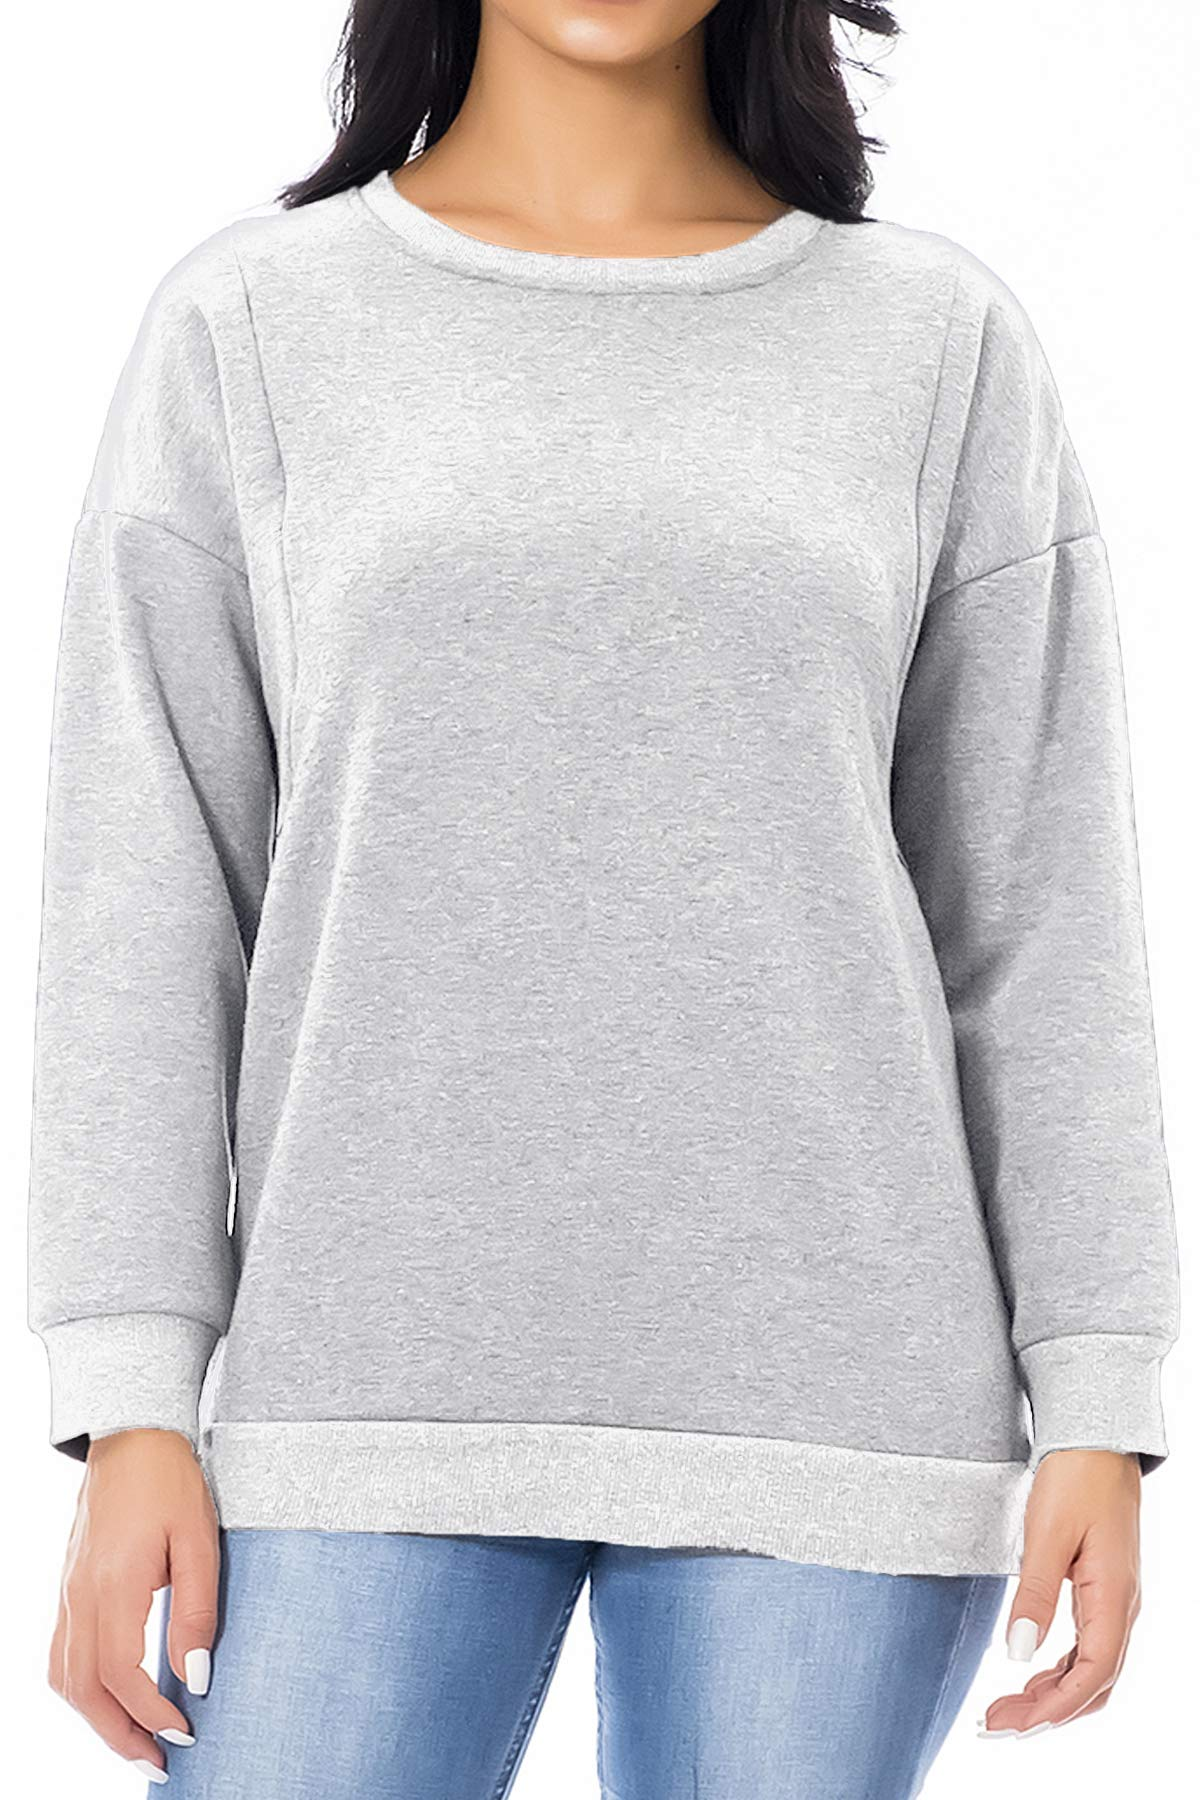 Smallshow Women's Fleece Maternity Nursing Sweatshirt Breastfeeding Tops X-Large Light Grey